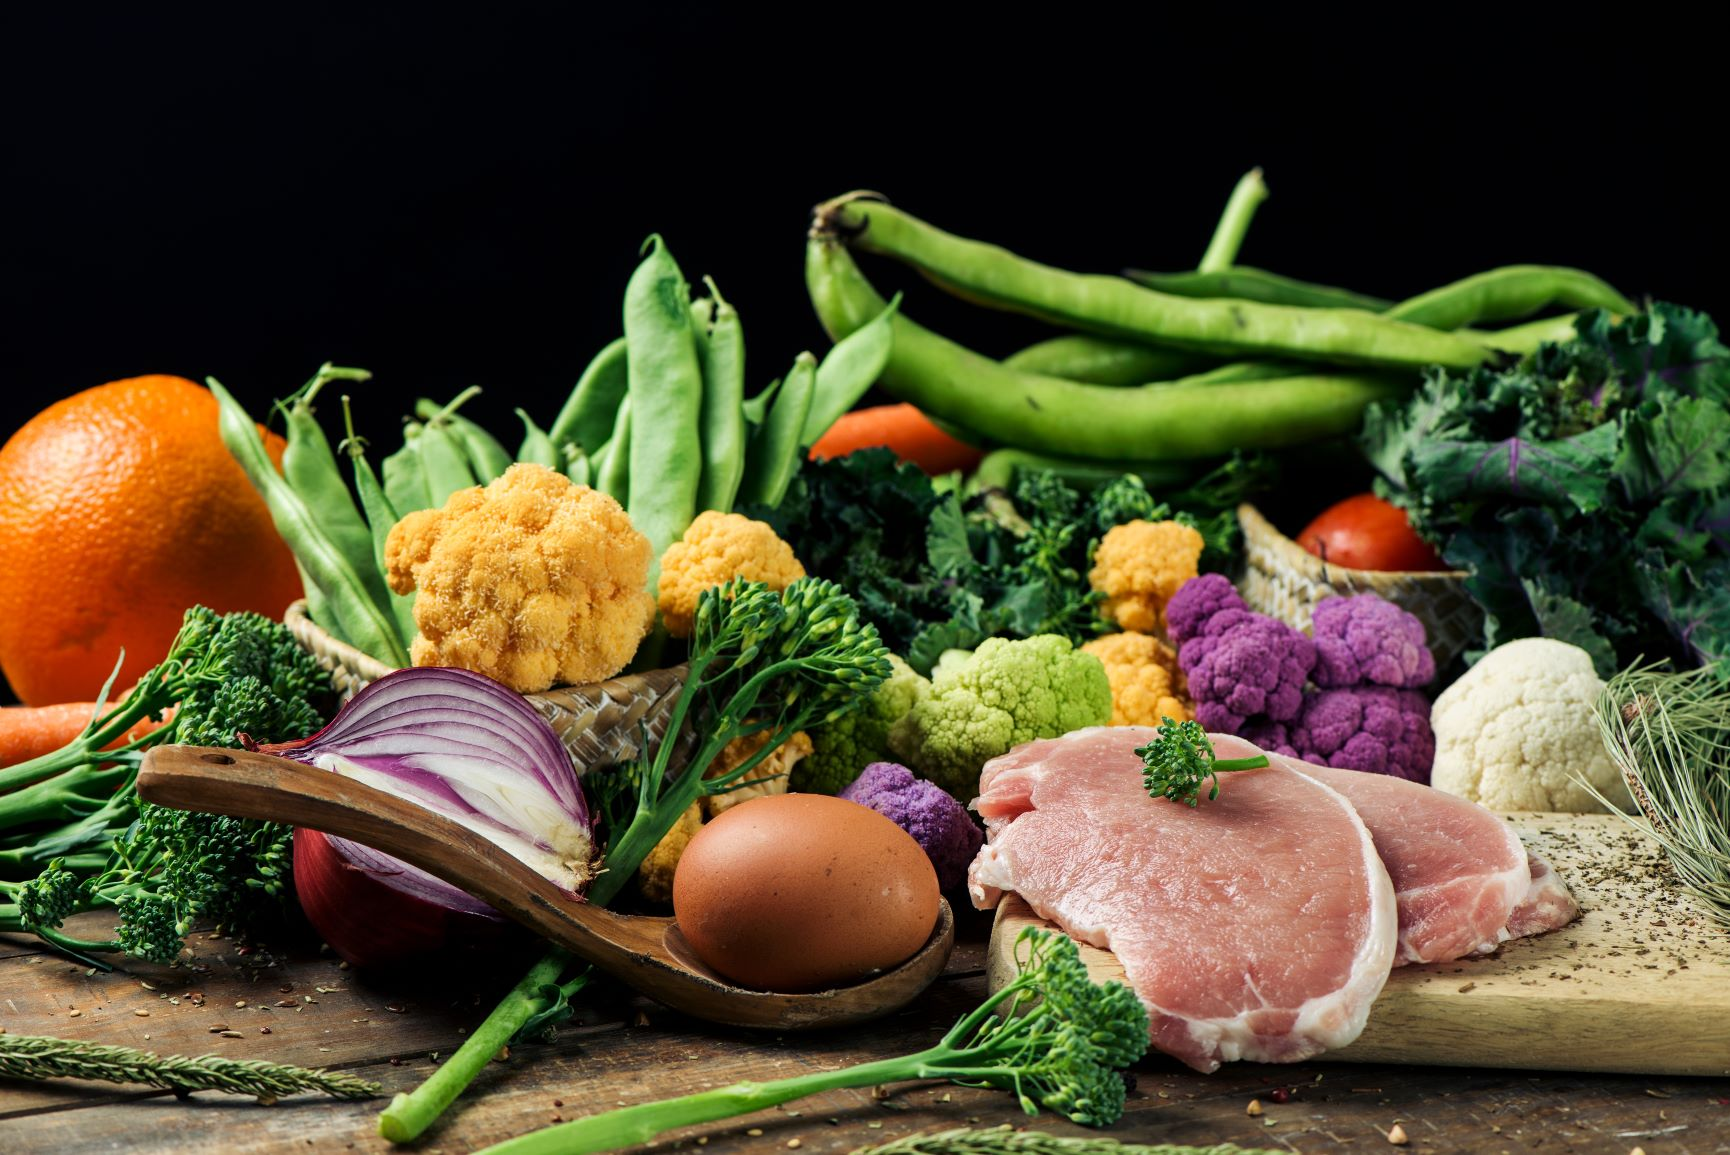 Range of foods from flexitarian diet